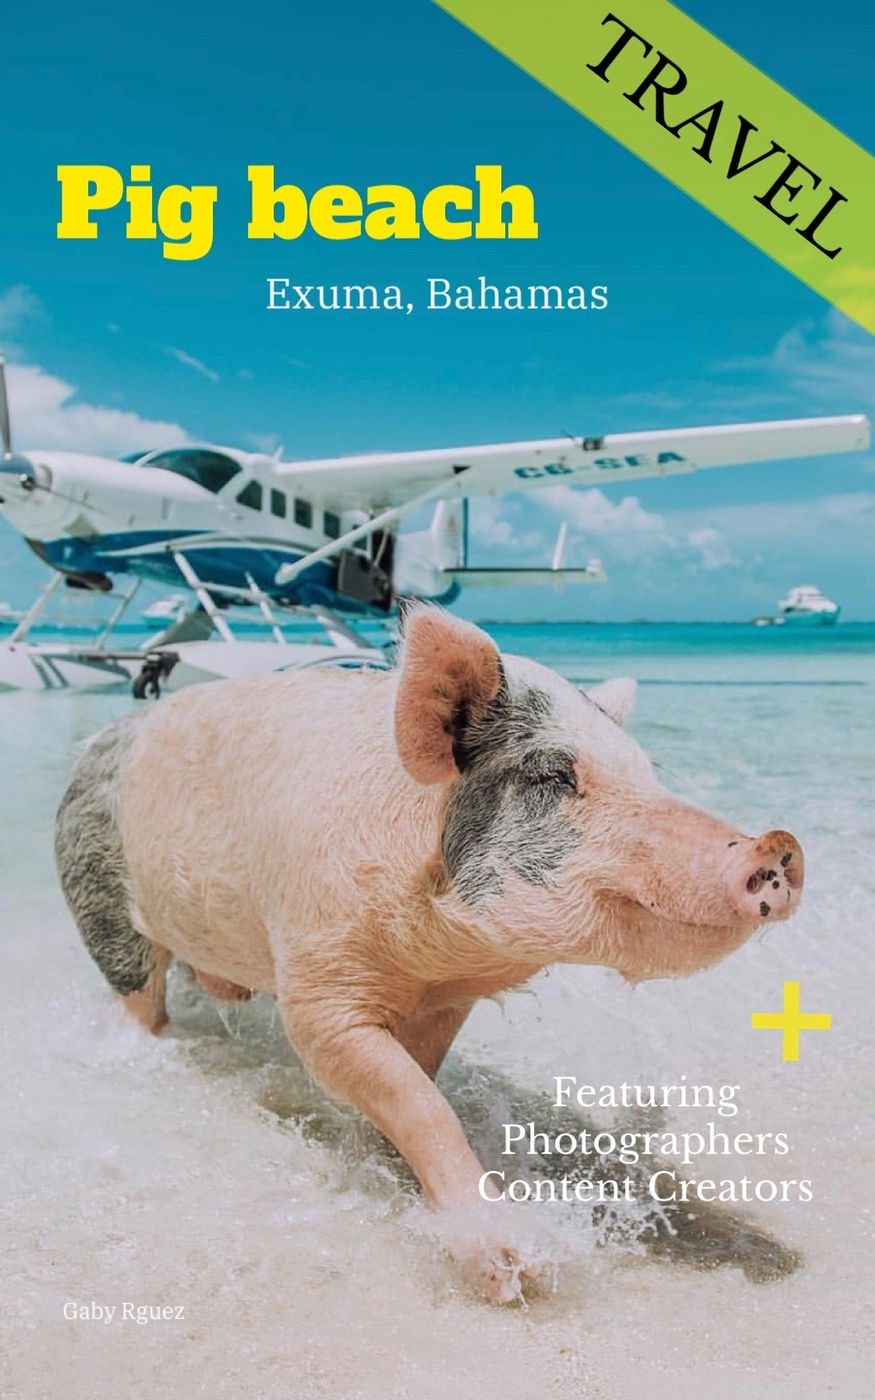 Featuring content creators and photographers | Pig Island 🐷